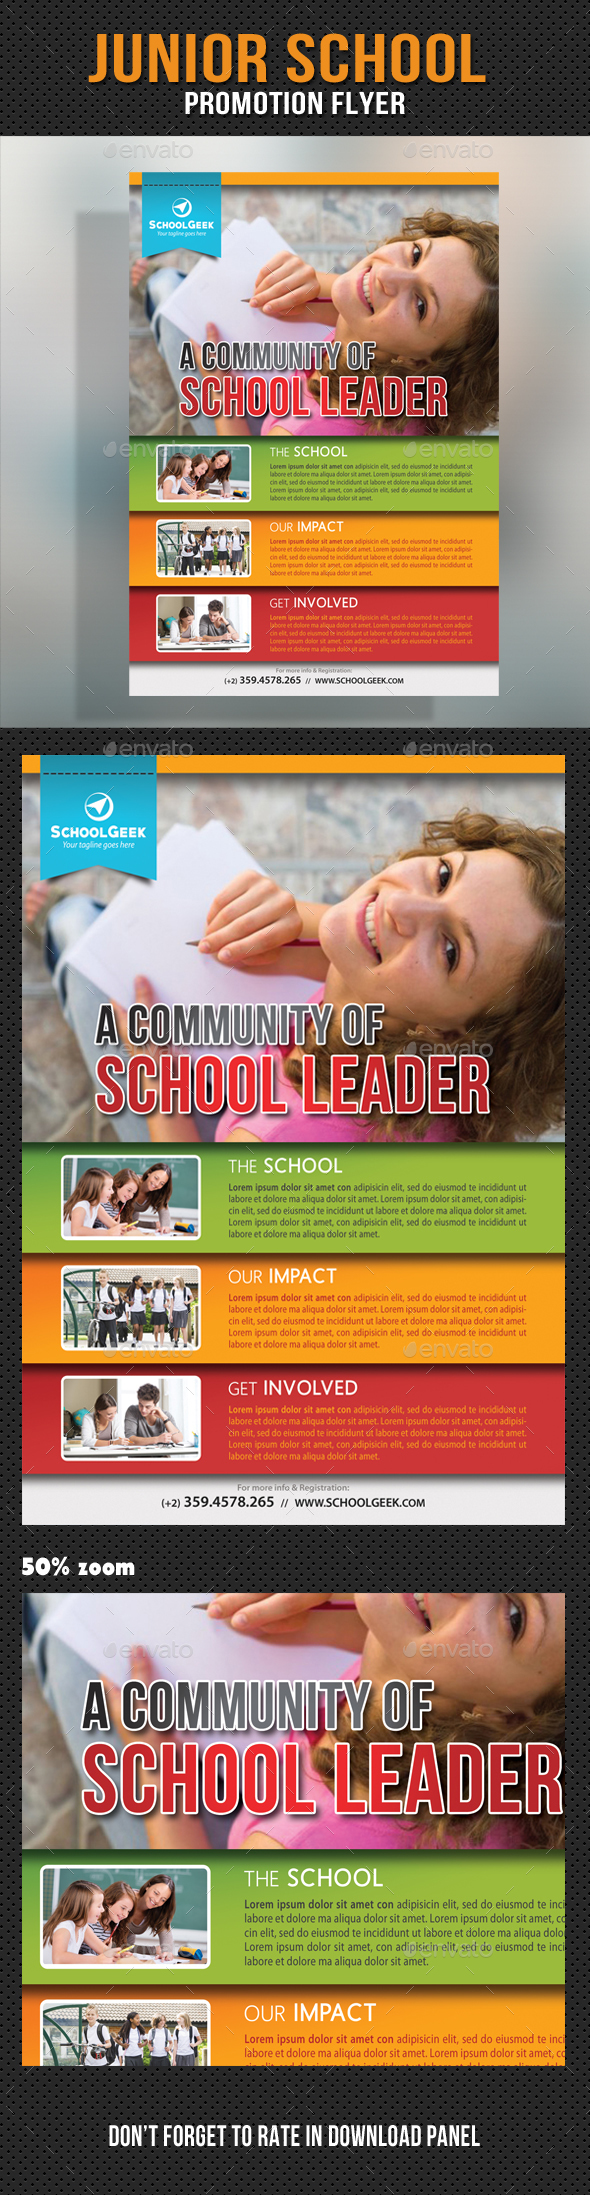 Junior School Promotion Flyer 11